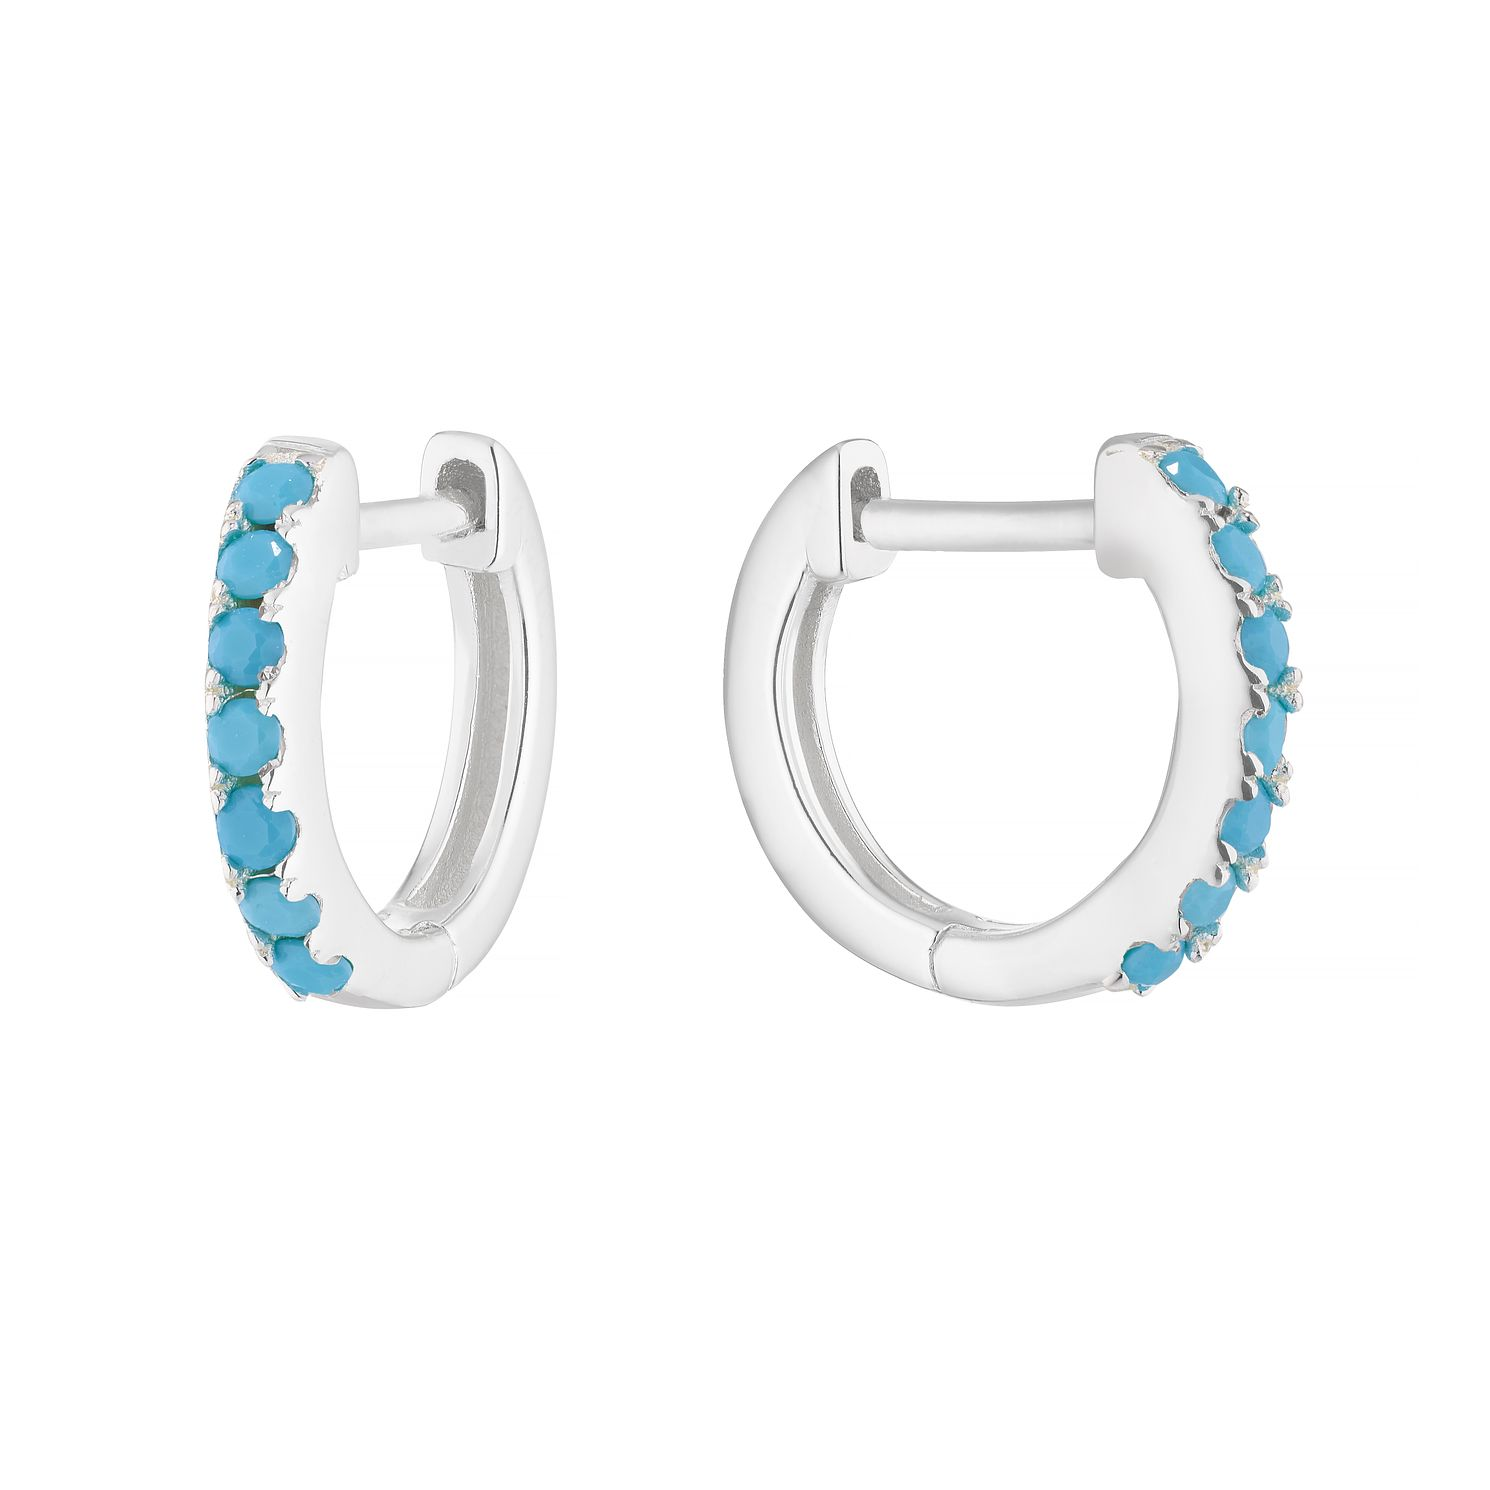 Sterling Silver Synthetitc Turquoise 9mm Huggie Earrings - Product number 1159615